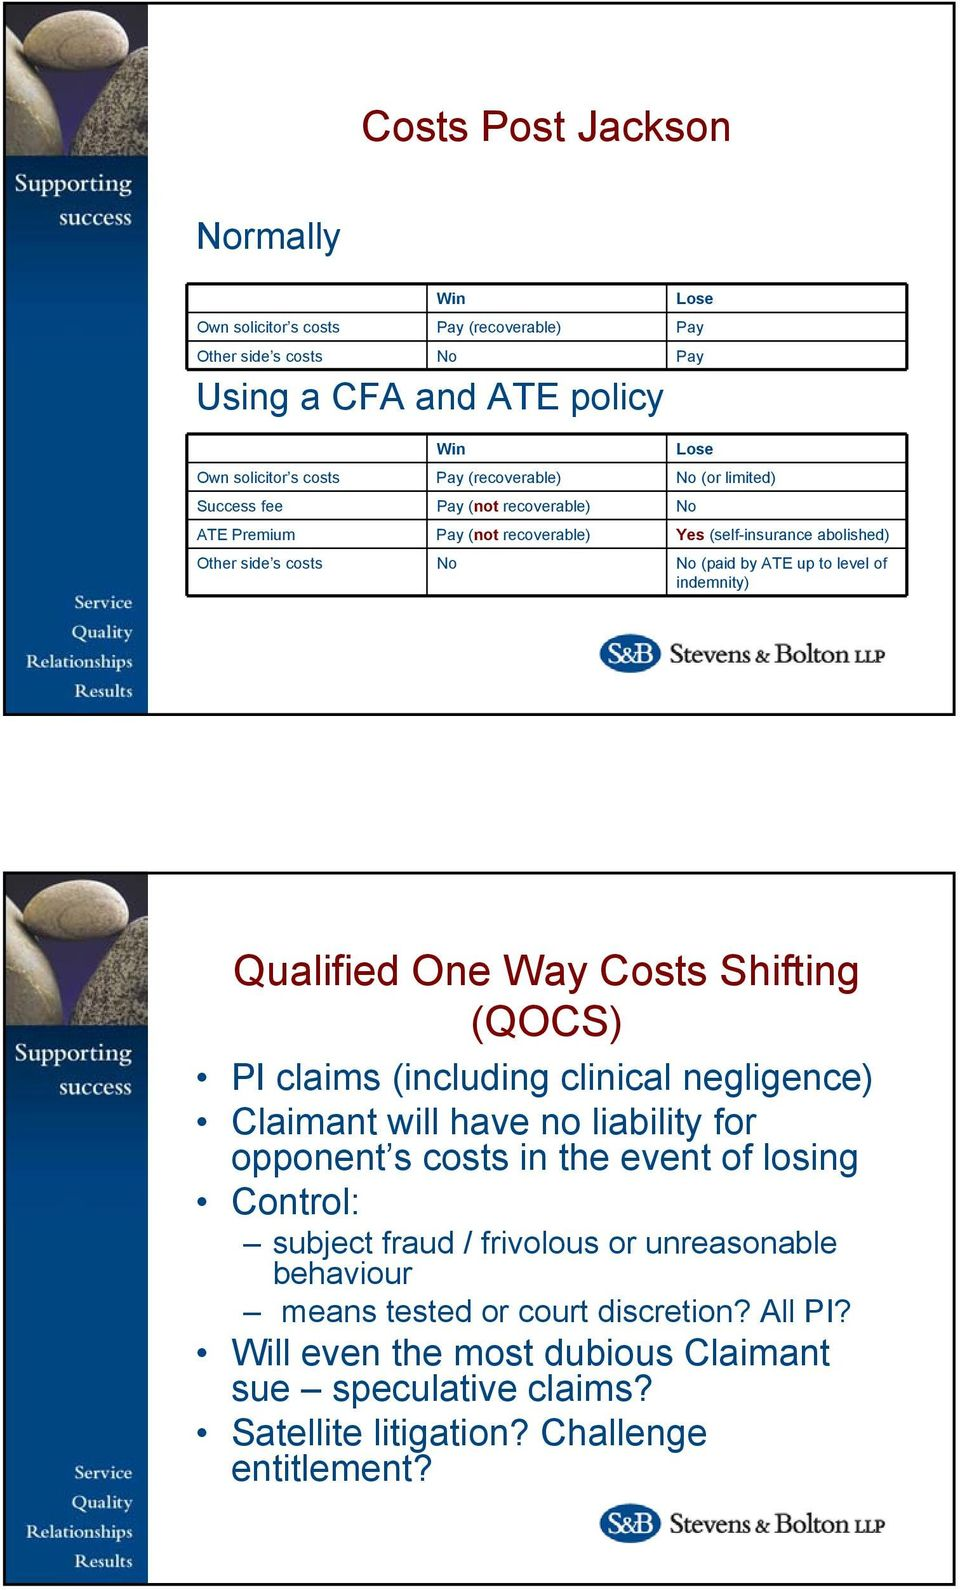 Qualified One Way Costs Shifting (QOCS) PI claims (including clinical negligence) Claimant will have no liability for opponent s costs in the event of losing Control: subject fraud /